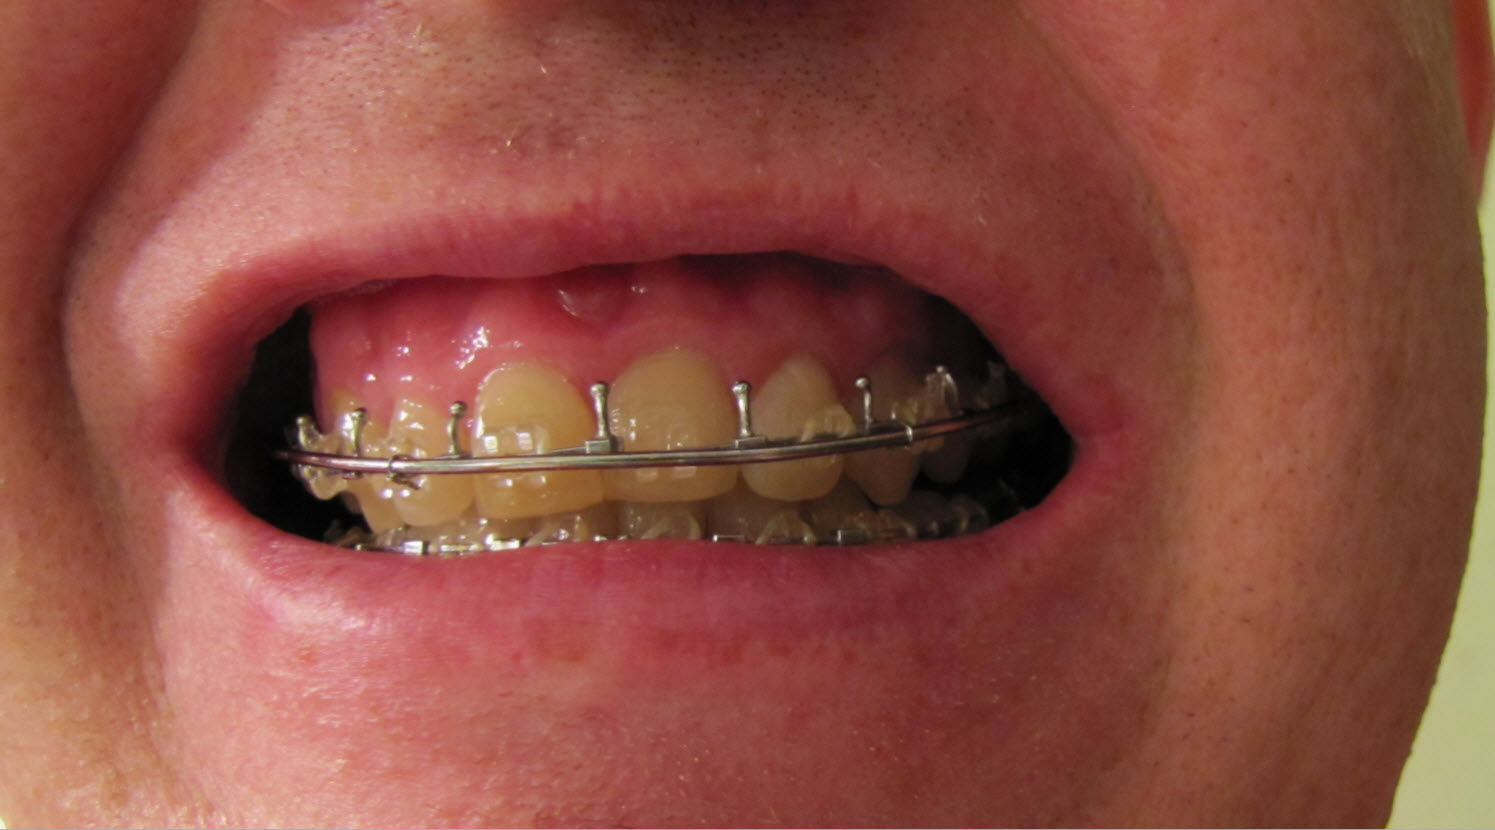 Wiring Jaw Splints Data Repo Projects F Fsrledseries Images Fsr Light Breadboardjpg Double Operation The Road To Recovery Rh Doublejawoperation Com Types Of Bruxism Splint